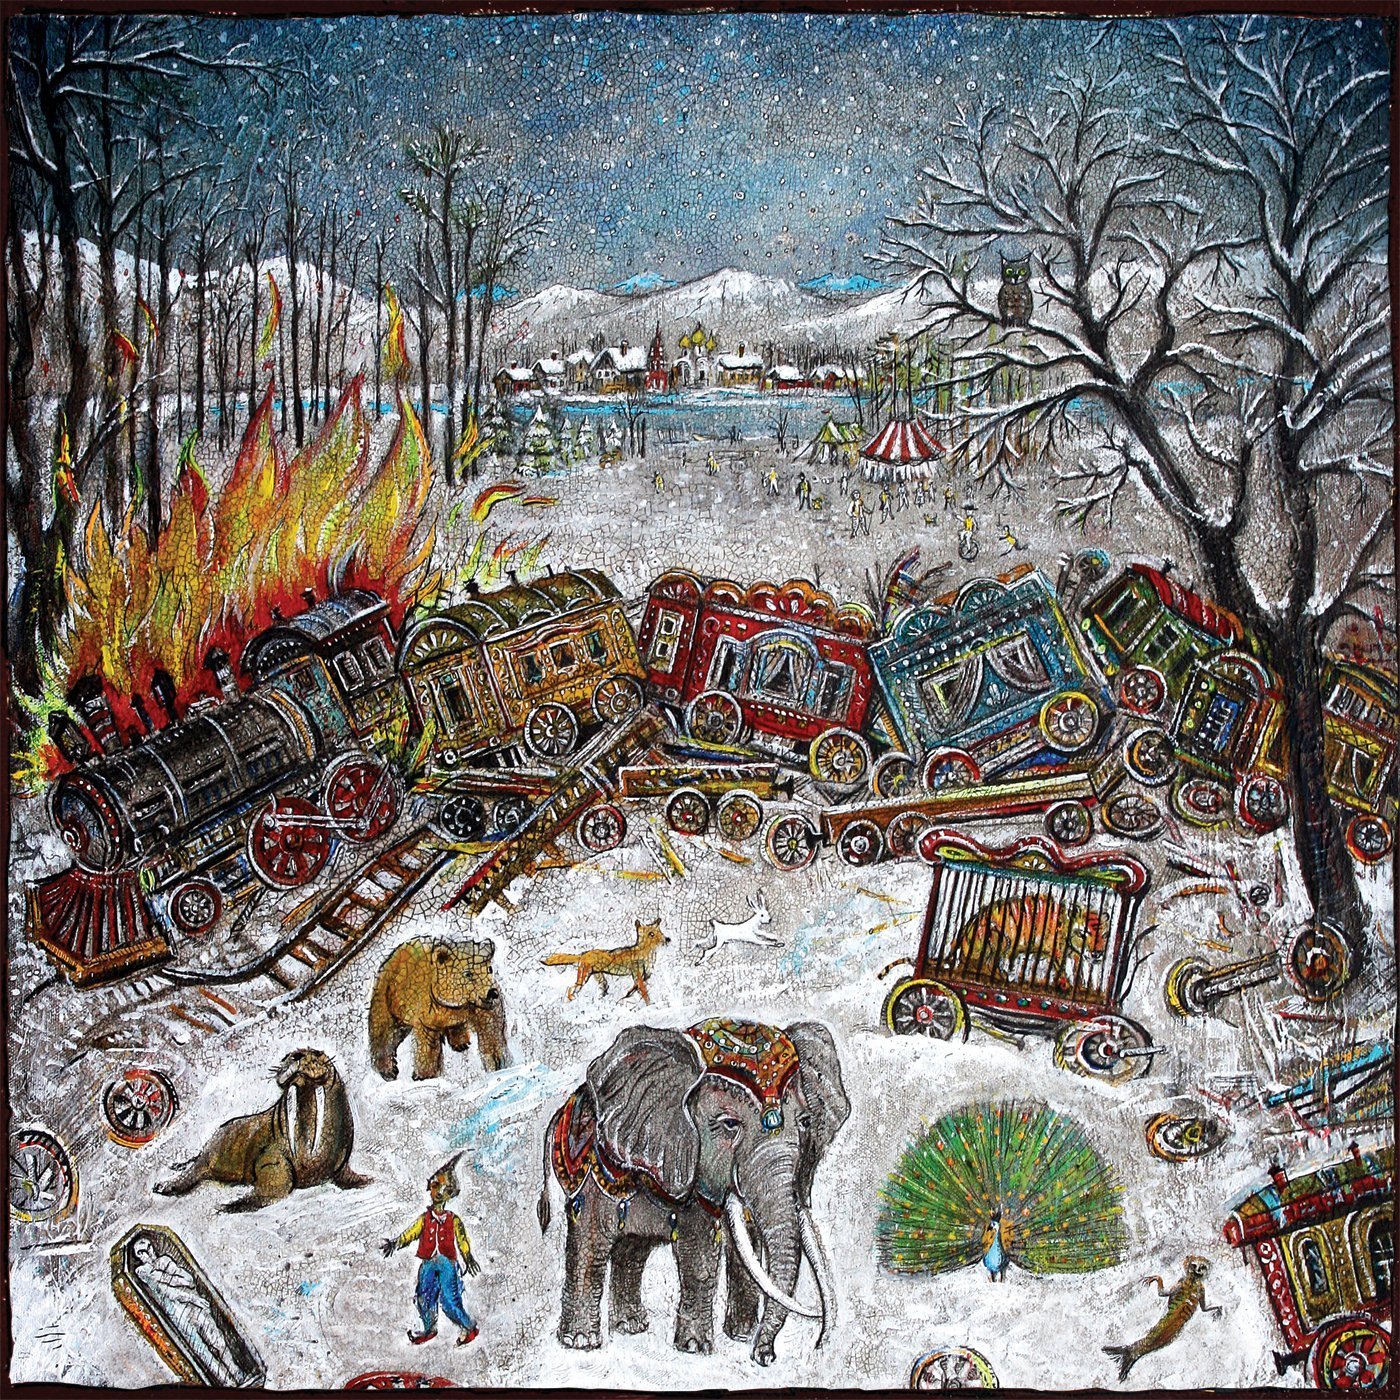 MeWithoutYou - Ten Stories LP (Big Scary Monsters)